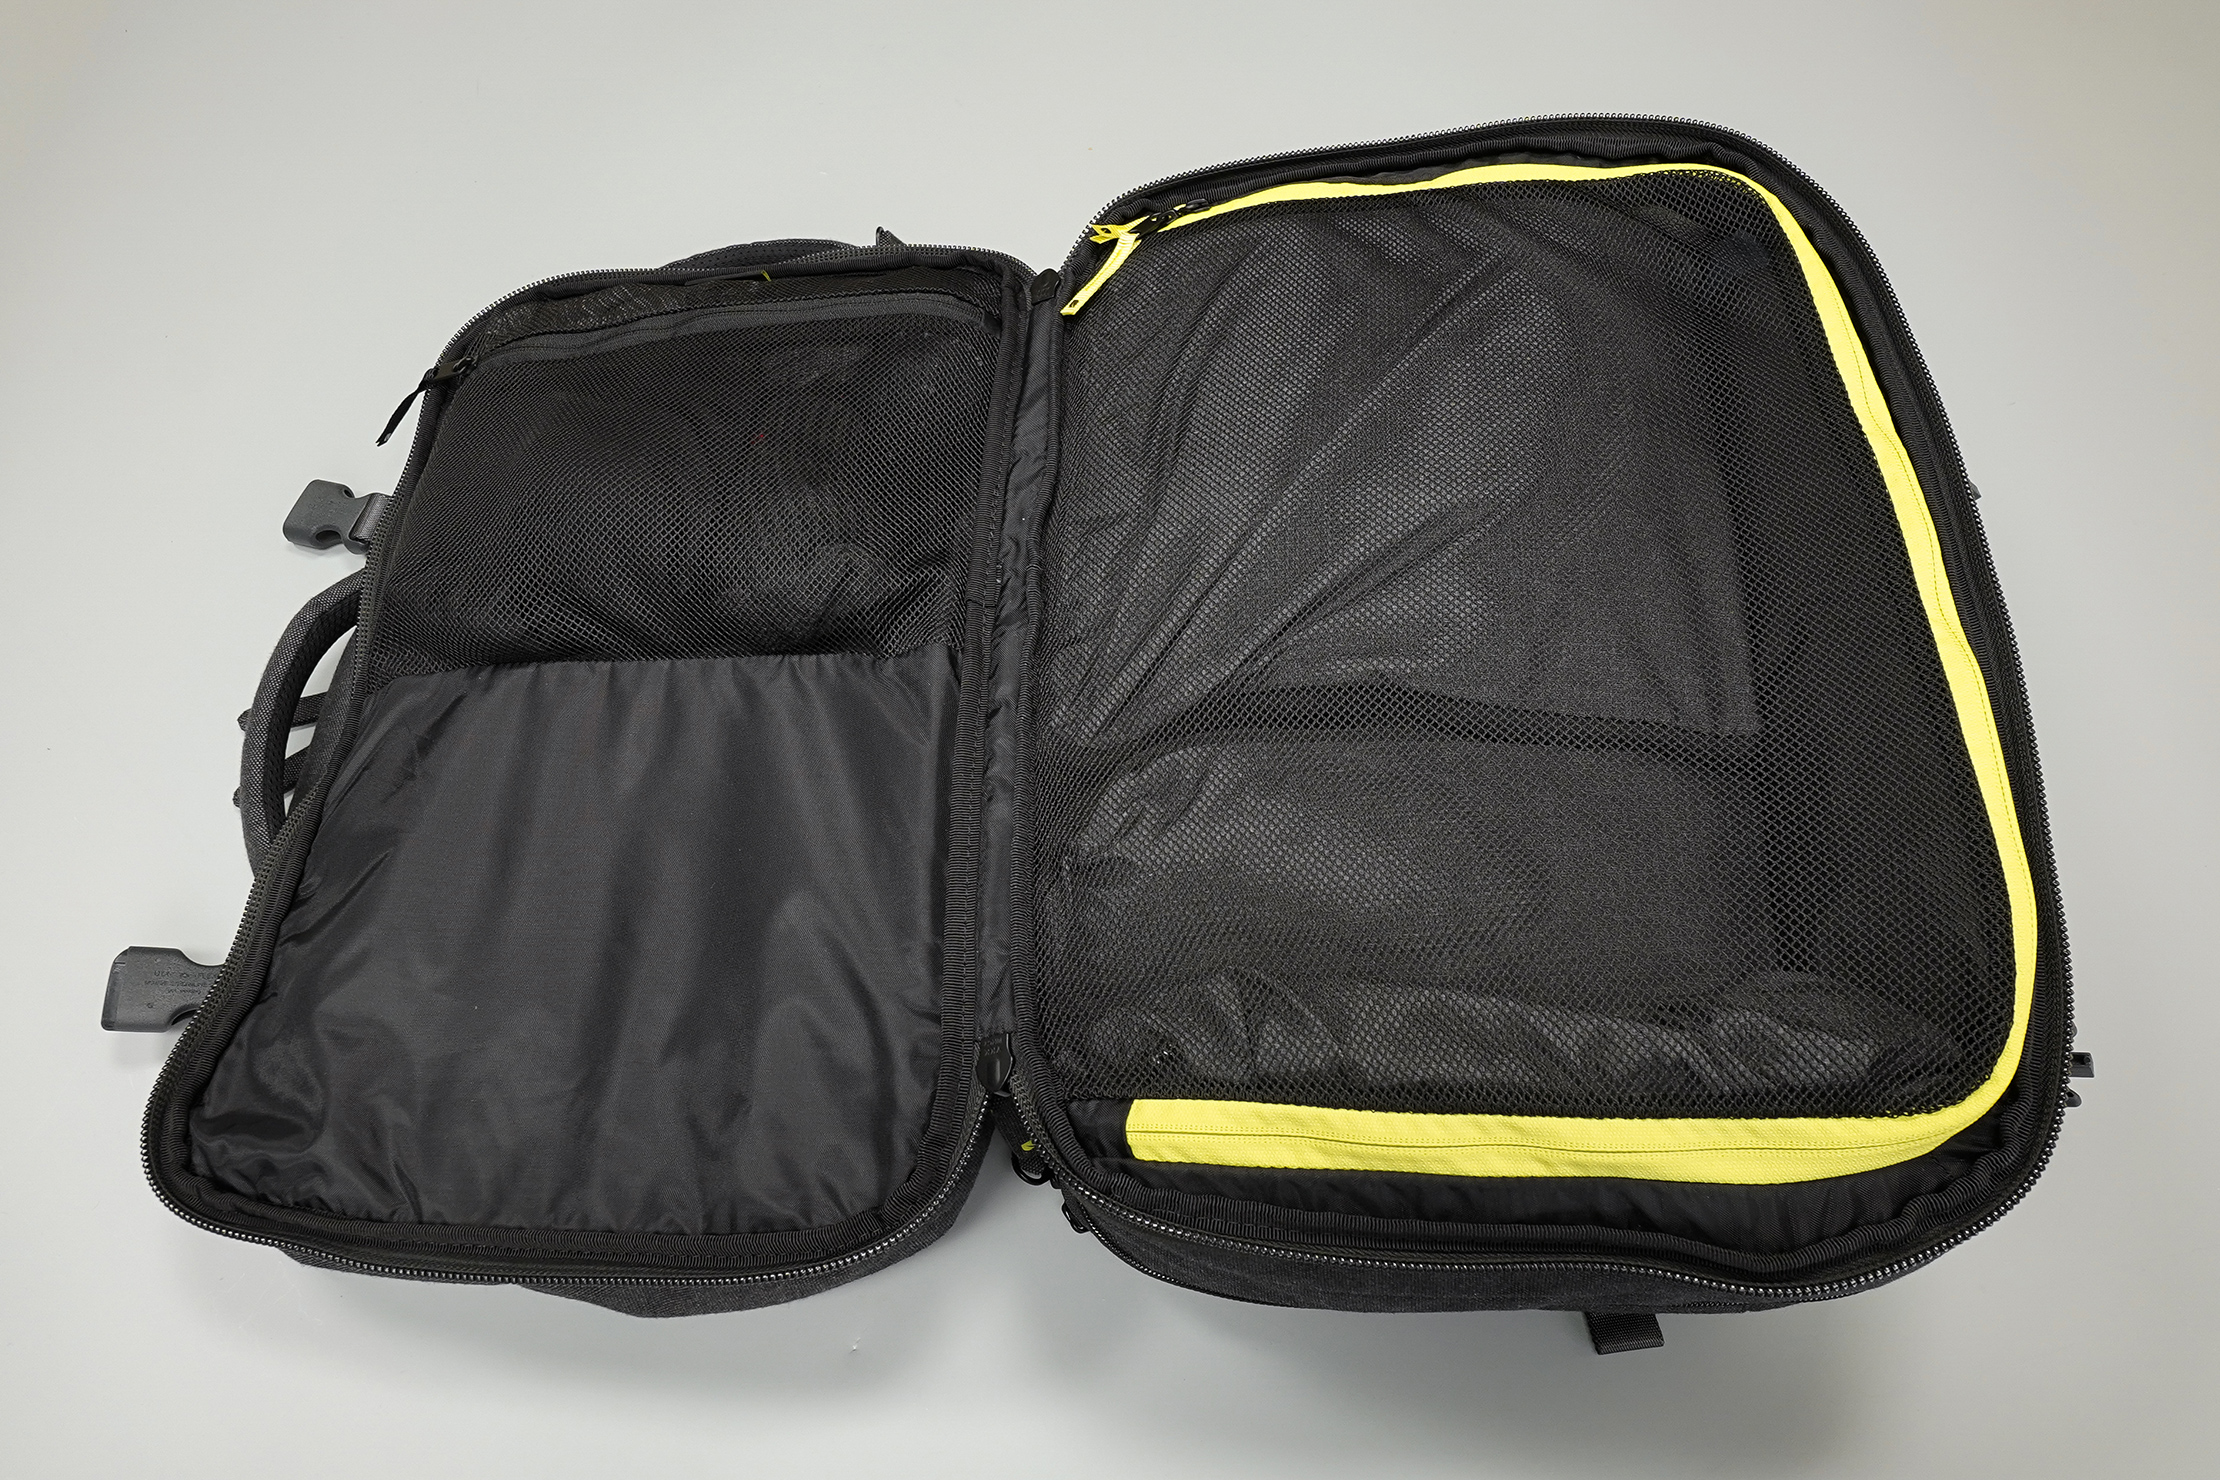 Incase EO Travel Backpack Main Compartment Clamshell Opening